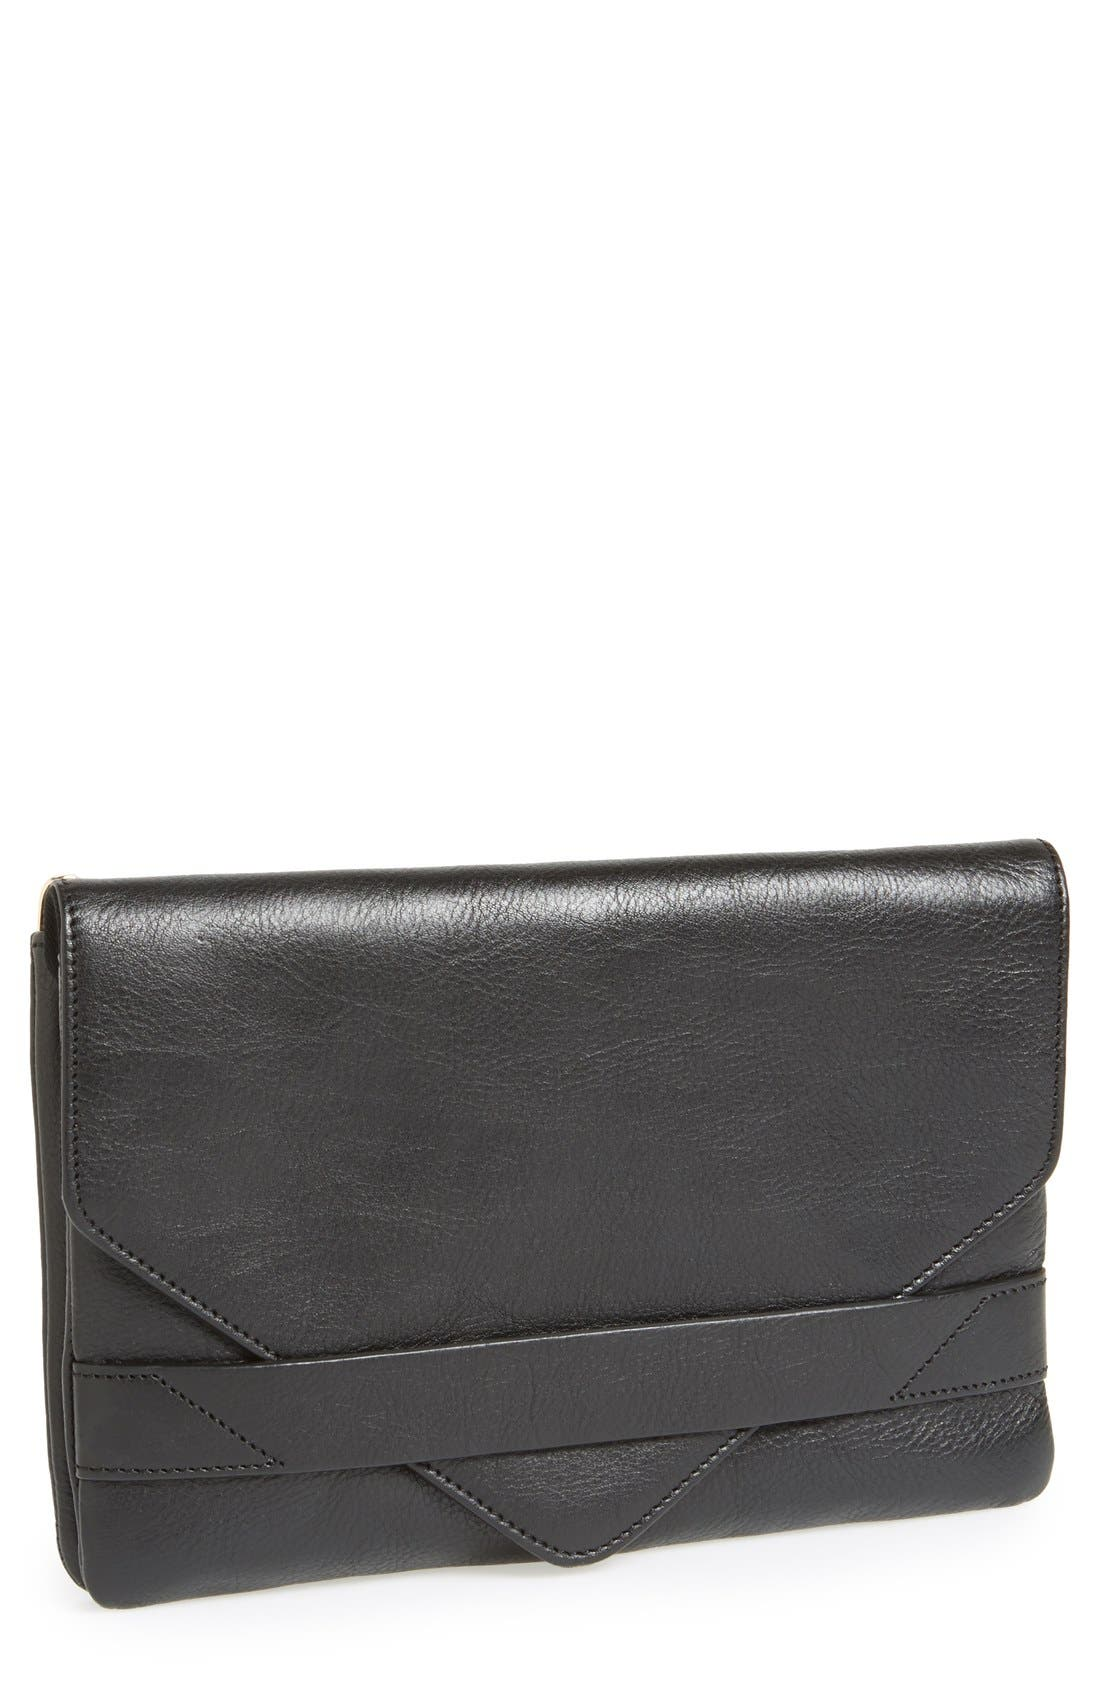 'Every Wear' Foldover Wristlet Clutch,                             Main thumbnail 1, color,                             001